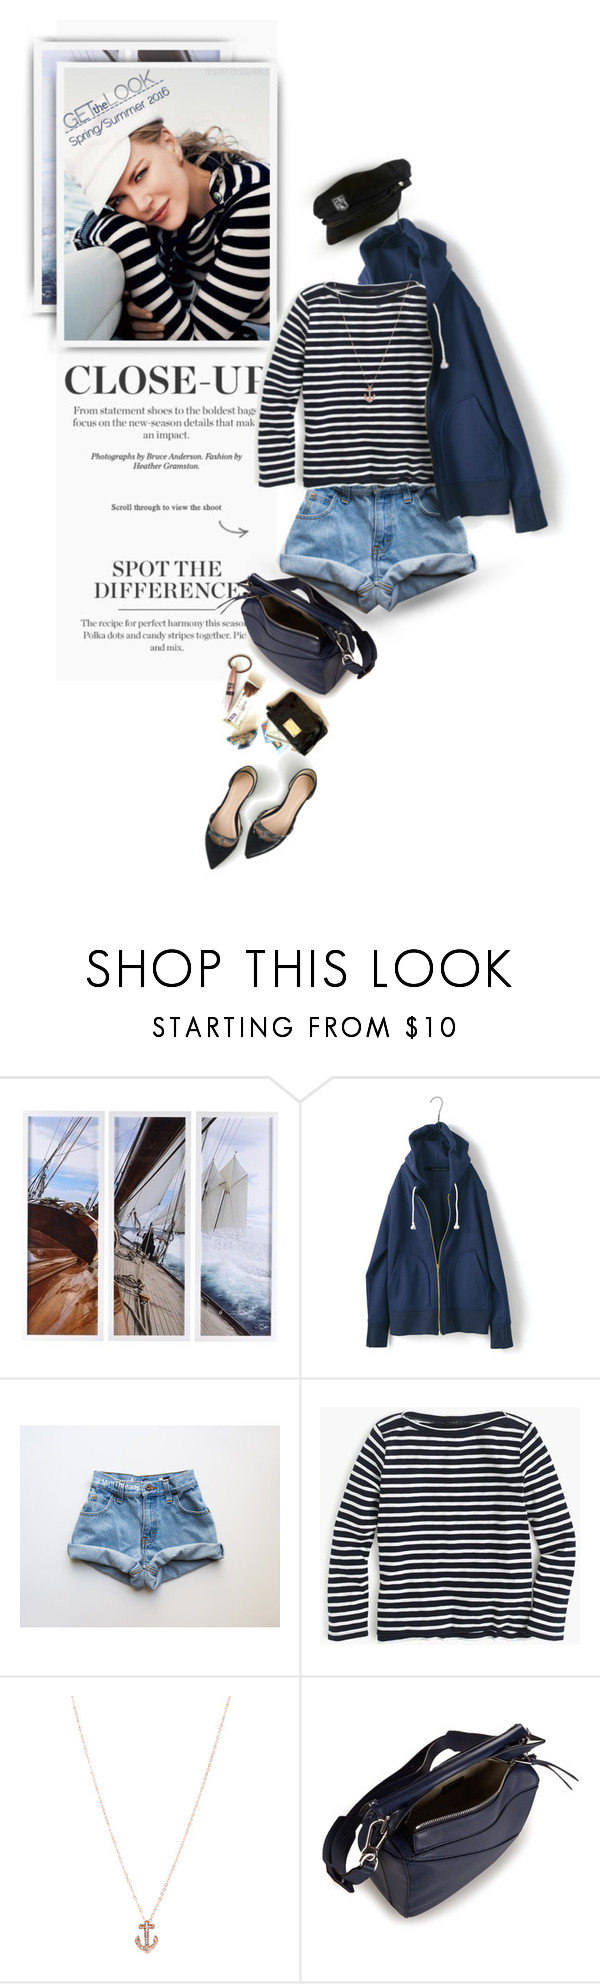 """""""♫ Billy Joel — The Downeaster 'Alexa'"""" by monazor ❤ liked on Polyvore featuring J.Crew, JustFab, Loewe and stripes"""